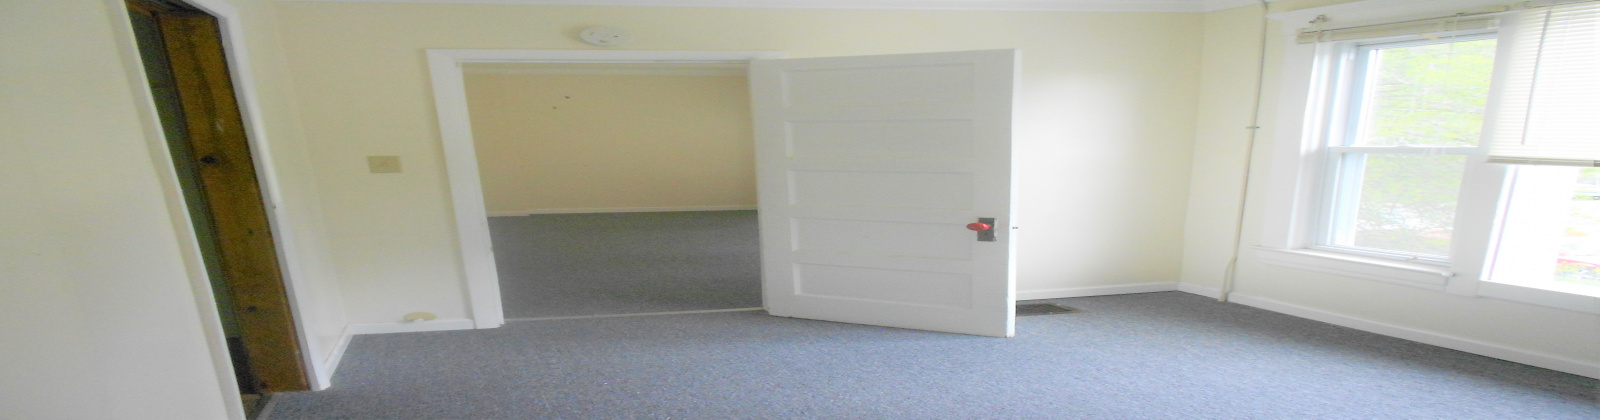 1 N May Ave APT 3 Athens, Ohio, 1 Bedroom Bedrooms, ,1 BathroomBathrooms,Apartment,For Rent,N May,1081